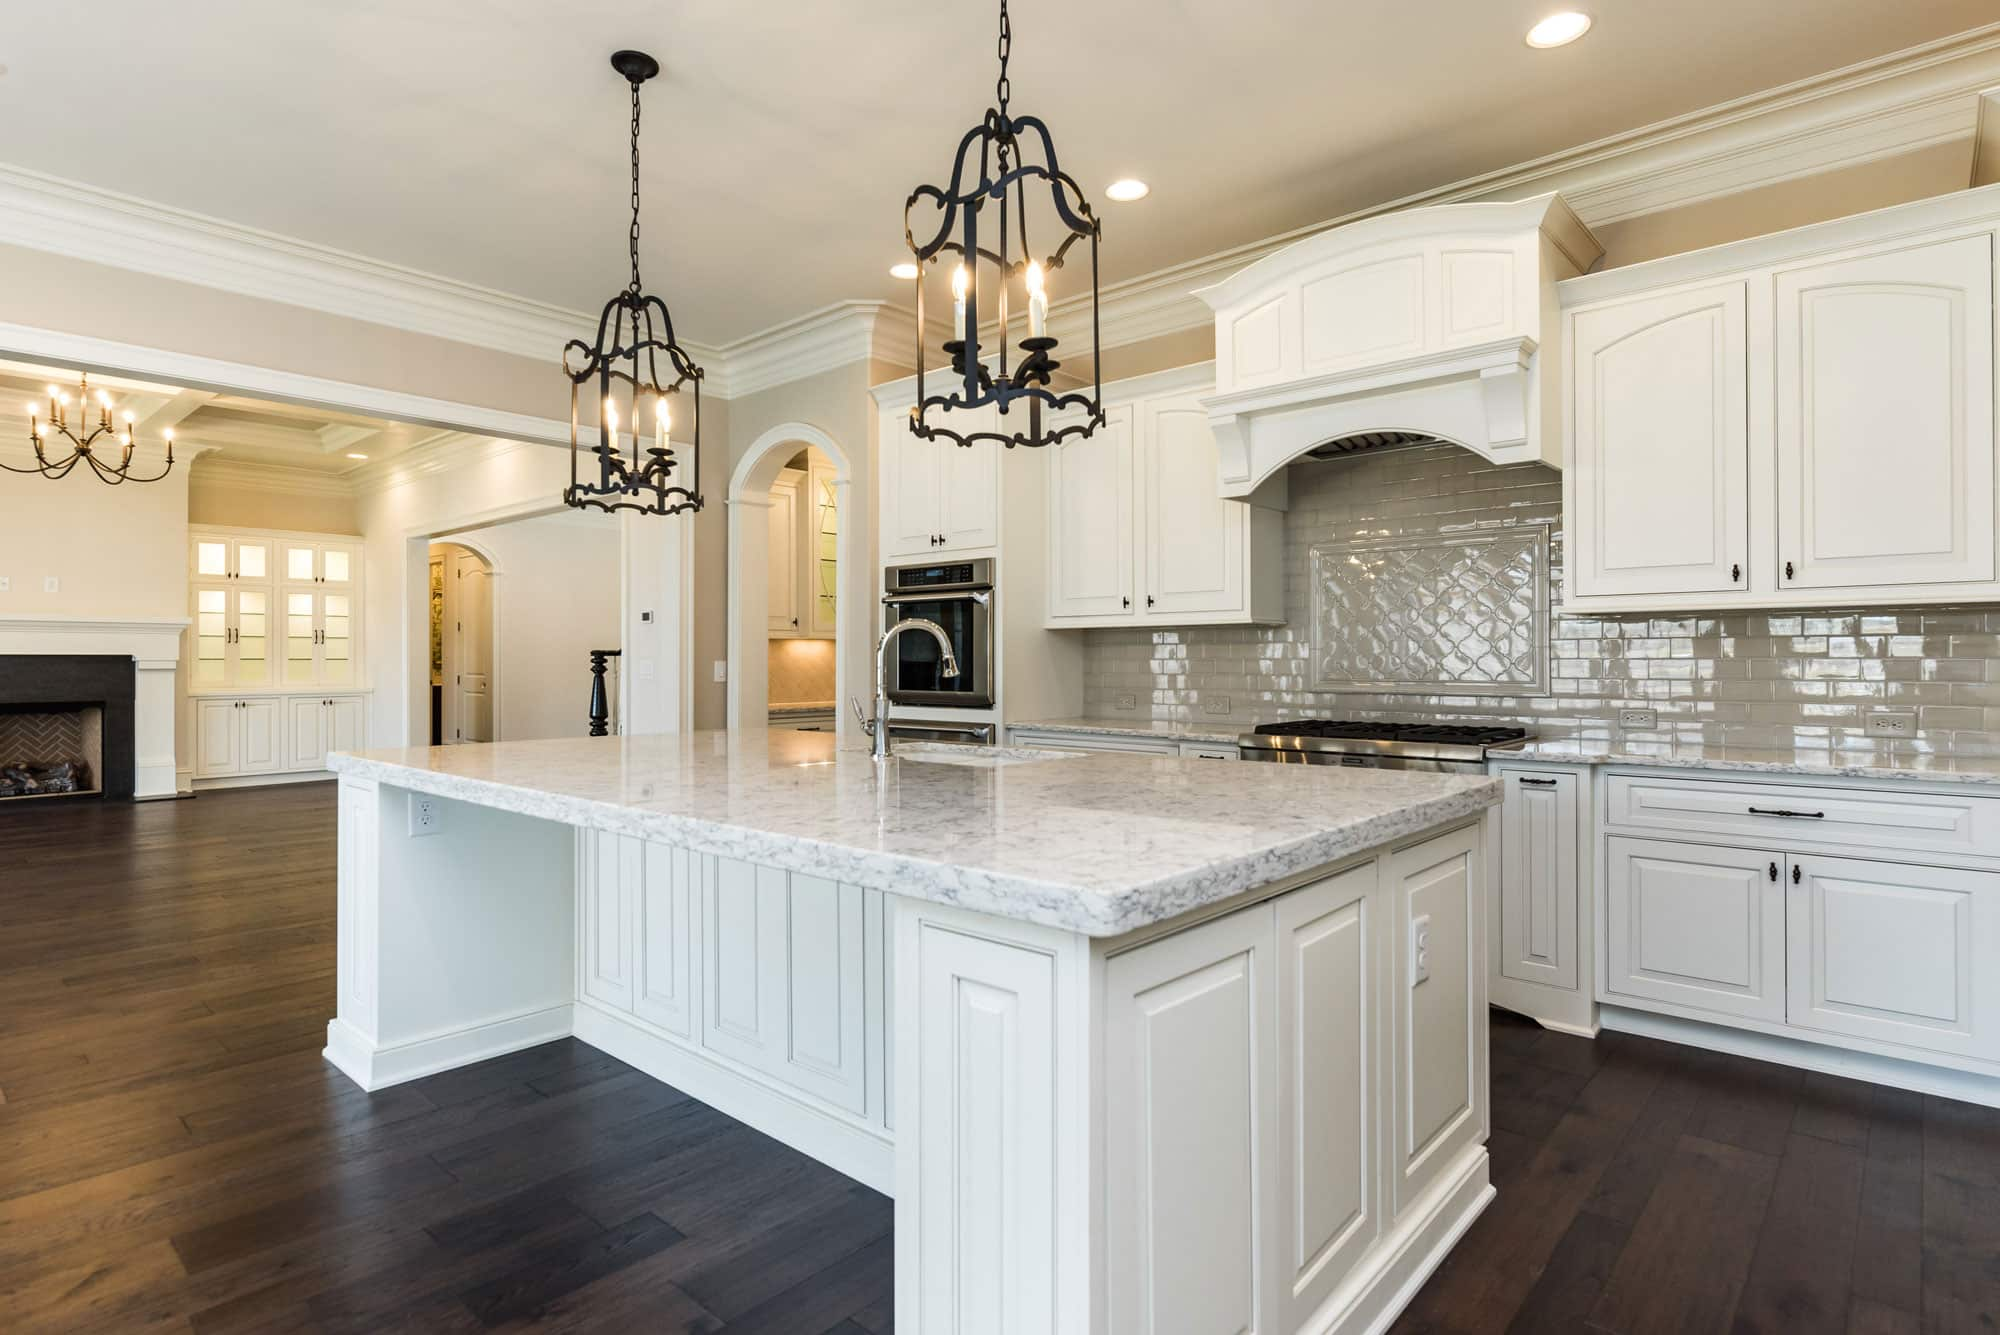 Kitchen of Home by Luxury Real Estate Developer